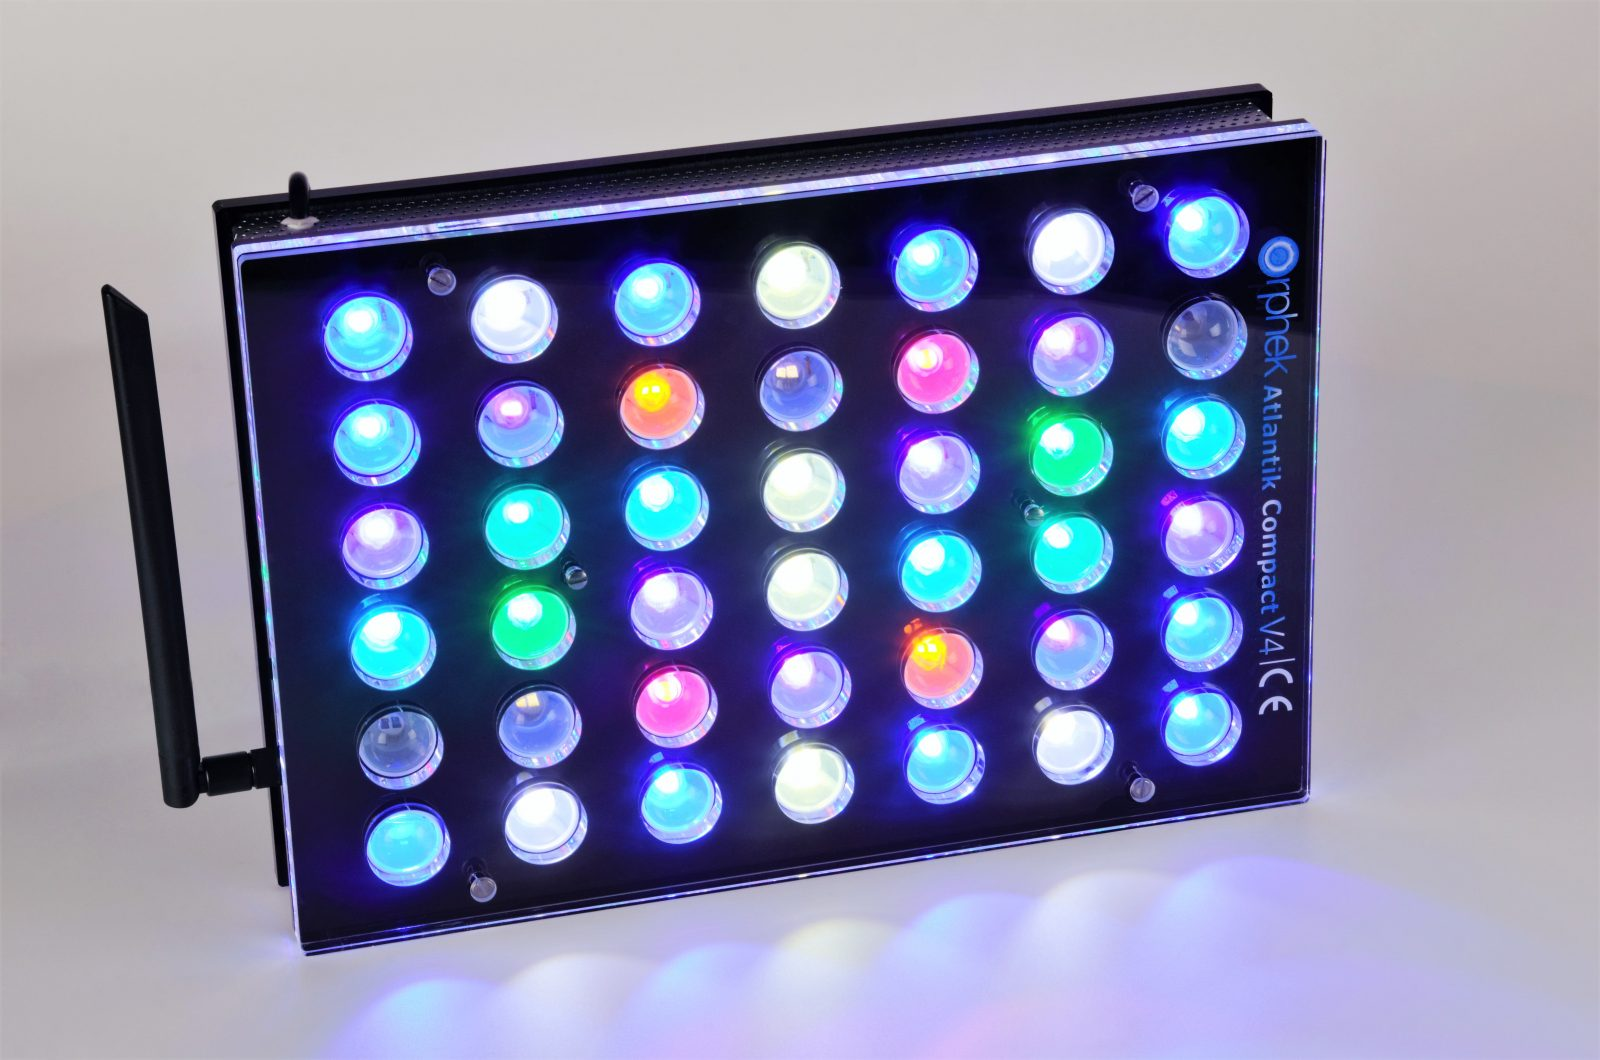 Orphek Aquarium LED Lighting Atlantik Compact V4 light on channel 1 + 2 + 3 + 4